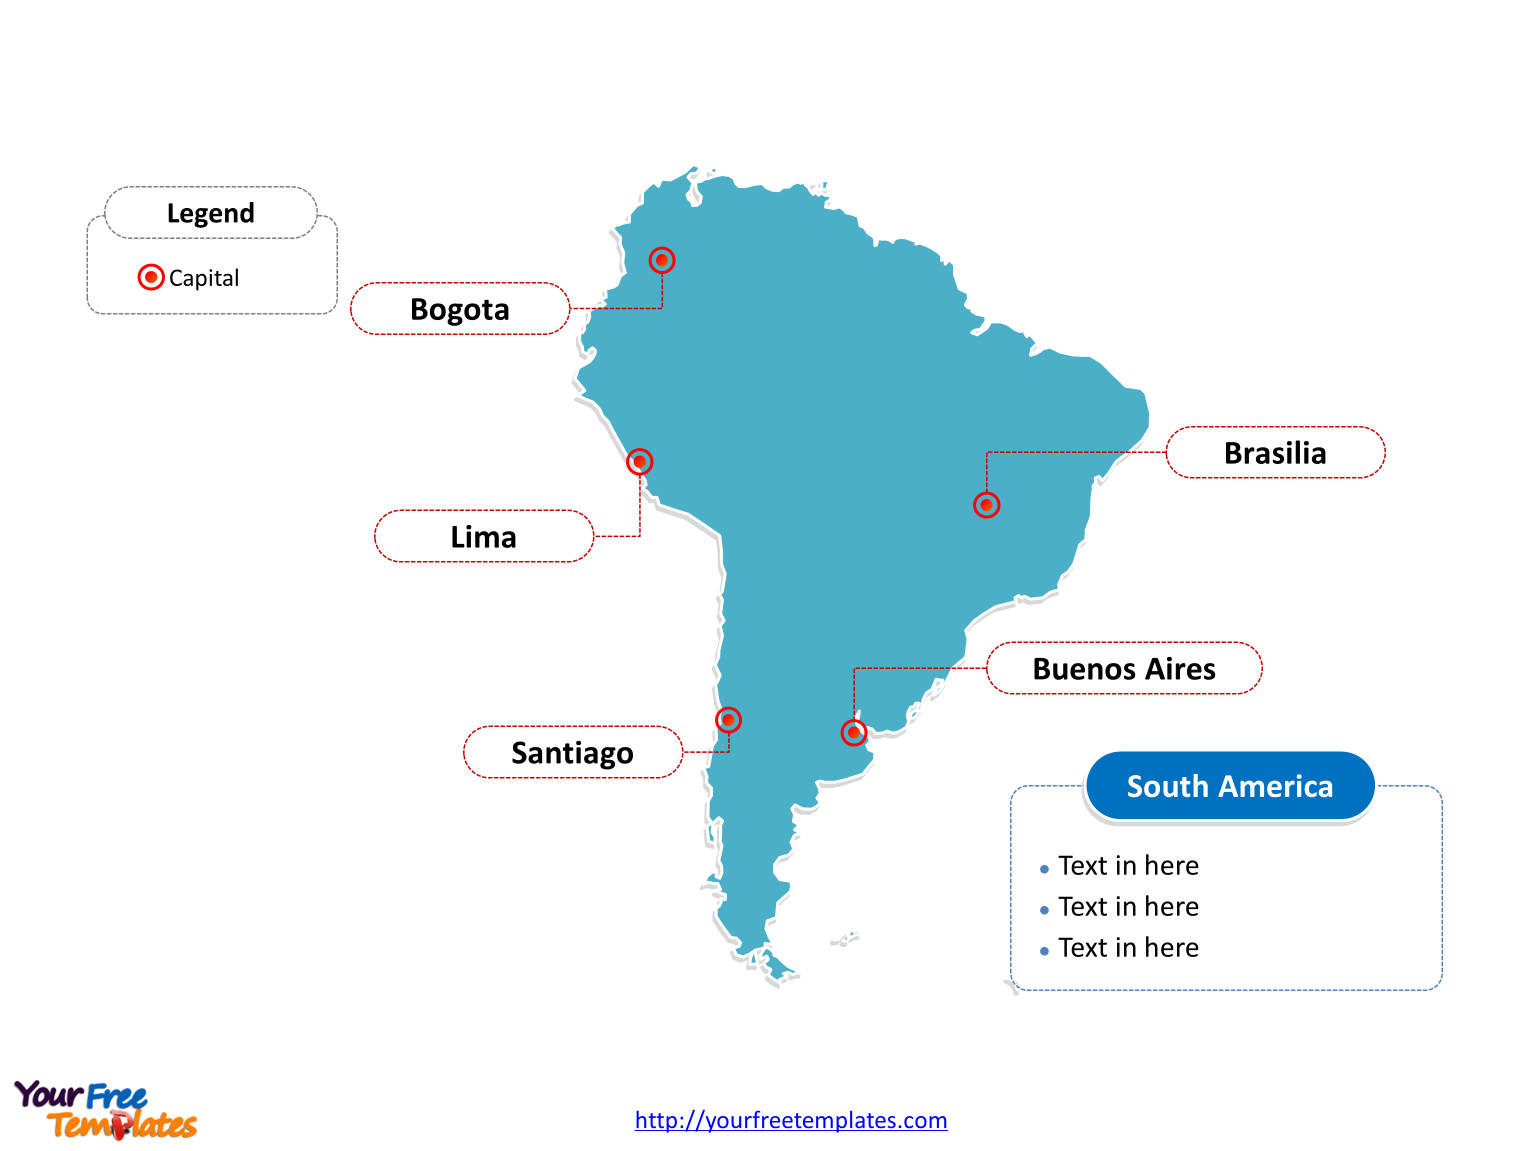 South America map free templates - Free PowerPoint Templates on free blank map of texas, free blank map of south asia, free blank map of the usa, free blank map of latin america, free blank map of australia, free blank map of denmark, free blank map of central america, free blank map of mexico, free blank map of russia, free blank map of west africa, free blank map of canada, free blank map of north america,